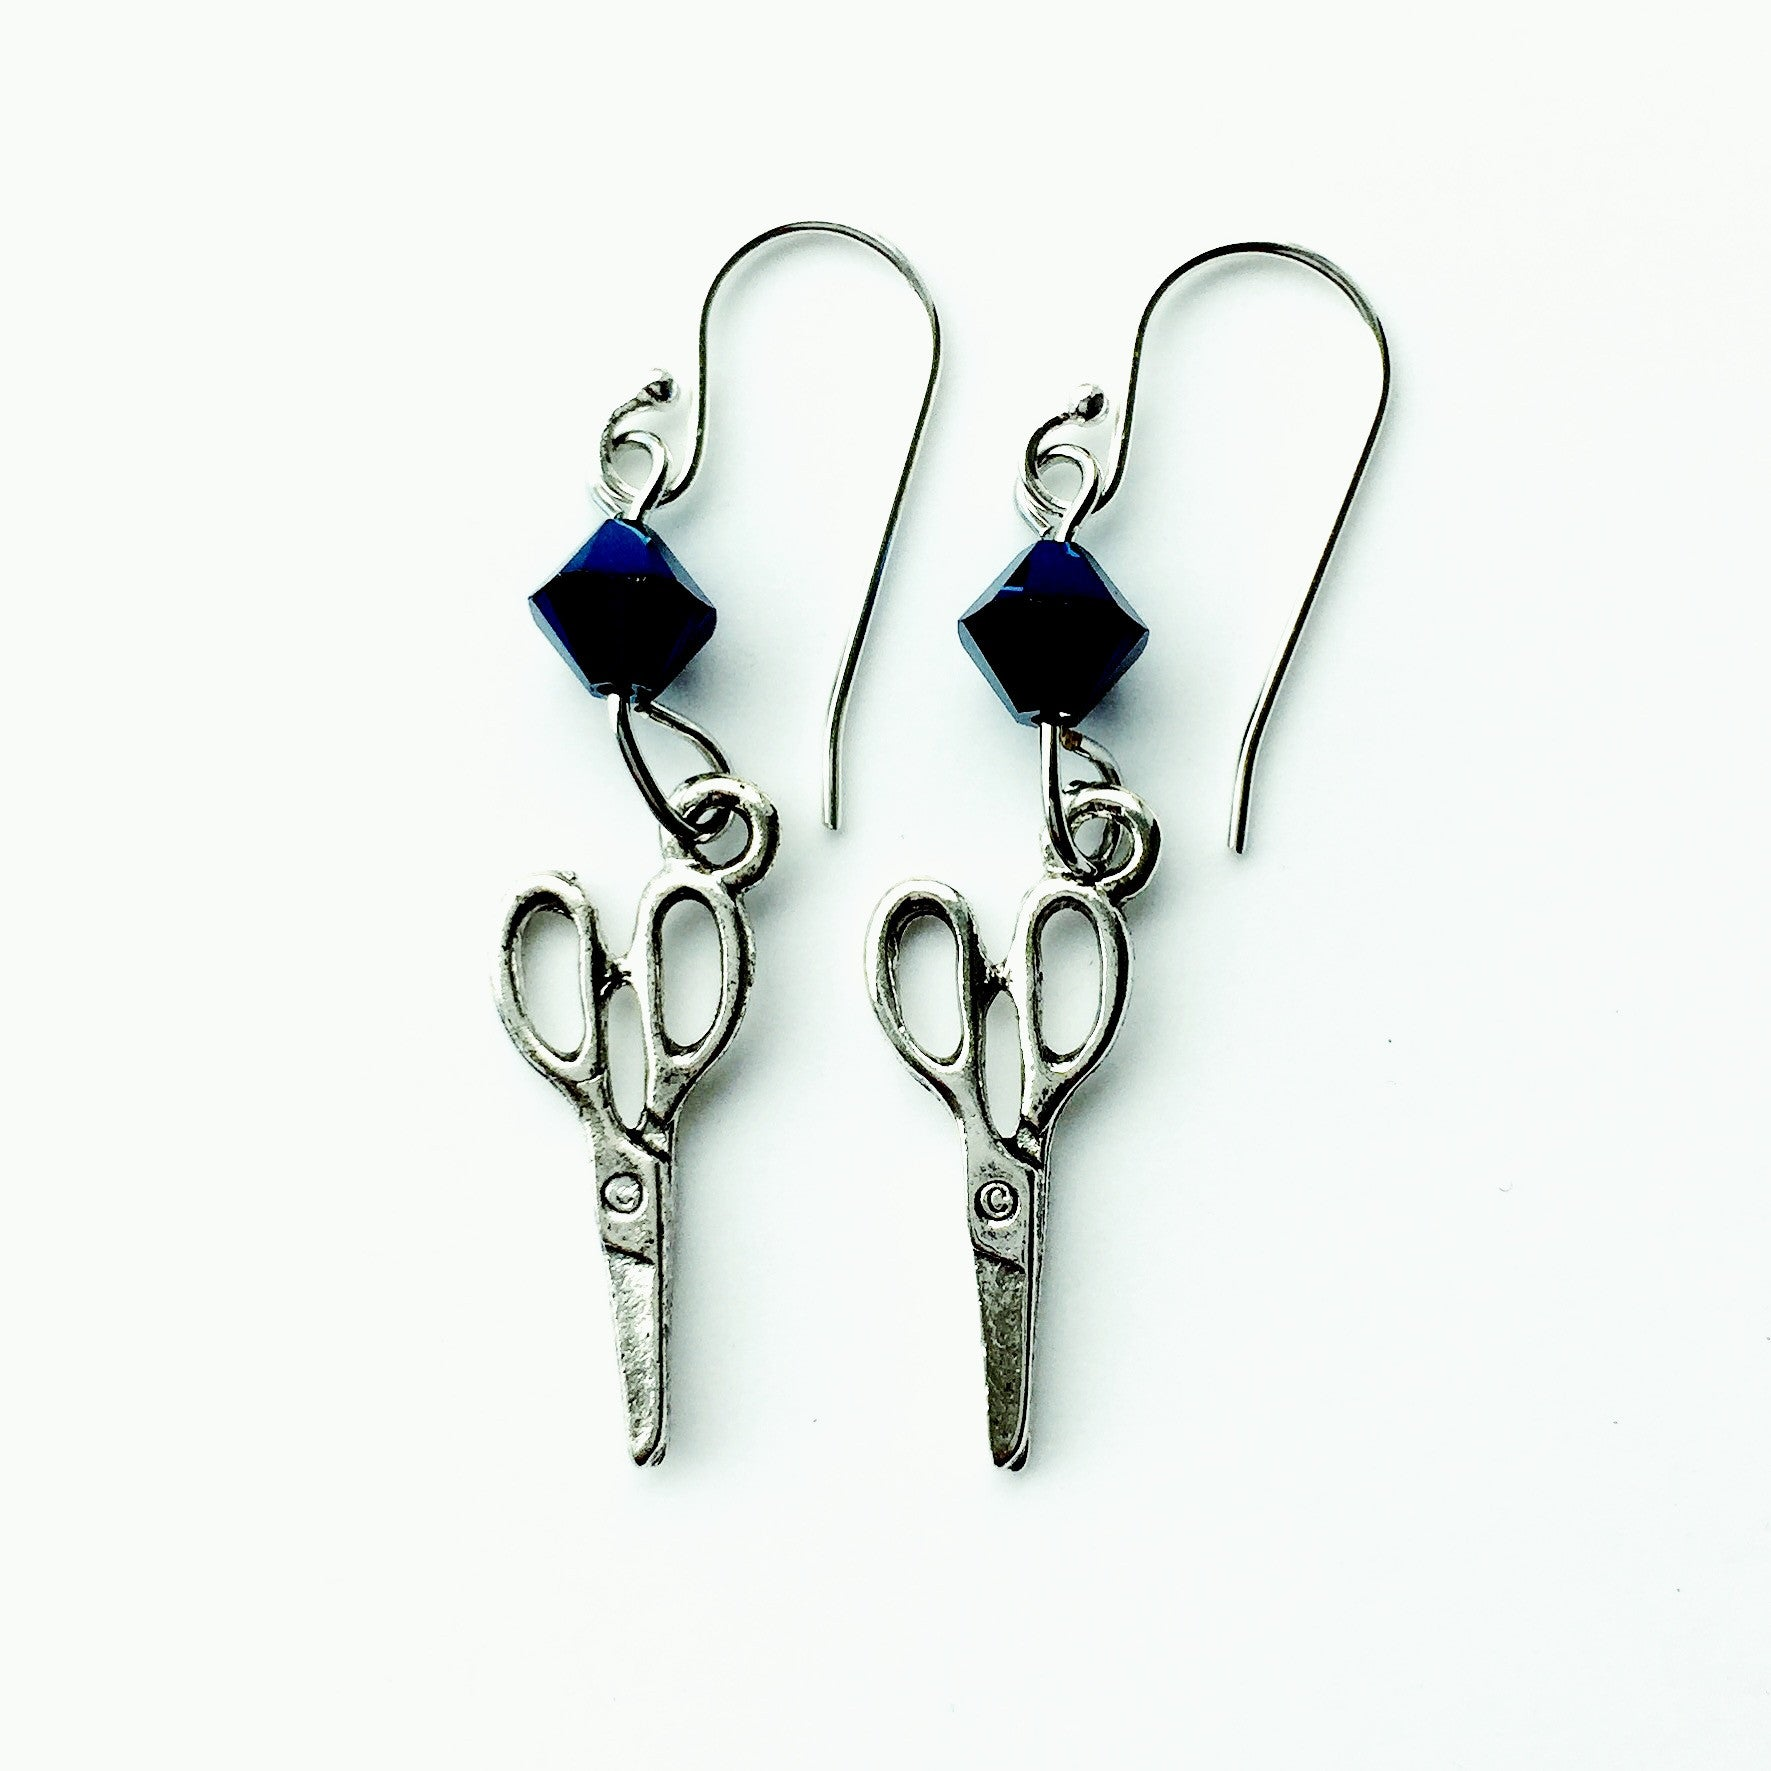 ____ Craft Scissors Silver Earrings with Blue Swarovski Crystals